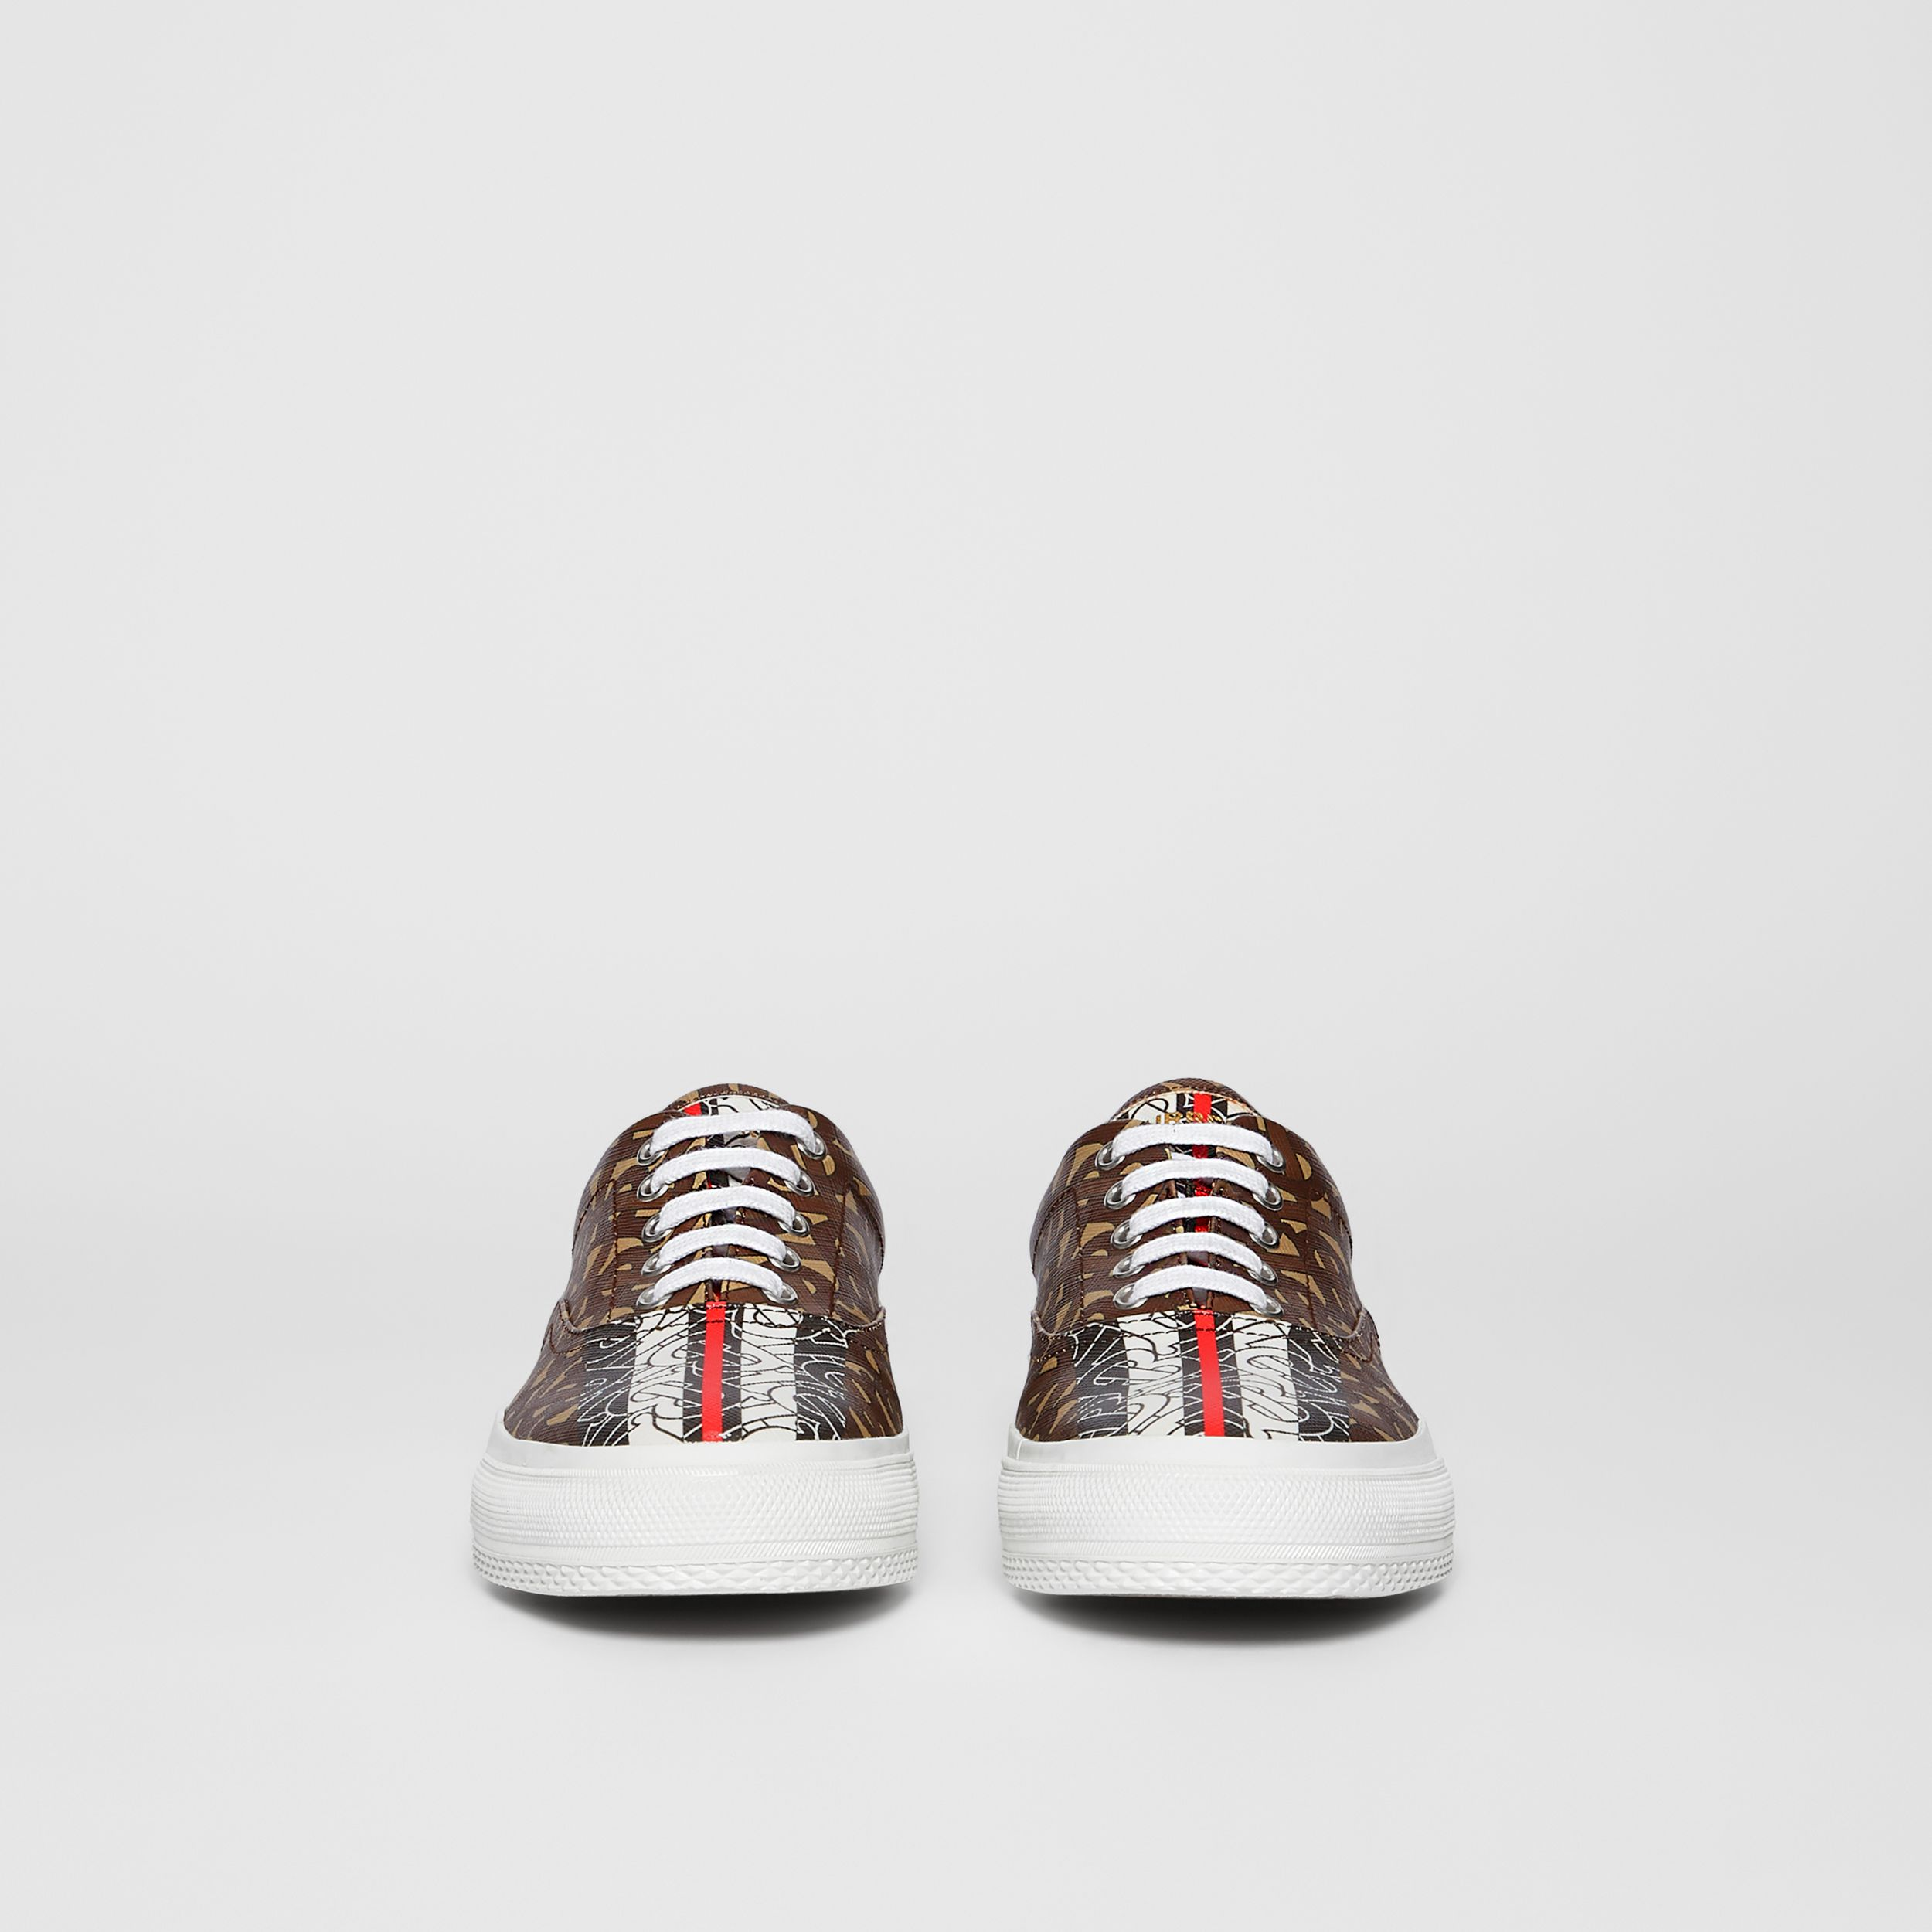 Monogram Stripe E-canvas Sneakers in Bridle Brown - Women | Burberry - 4